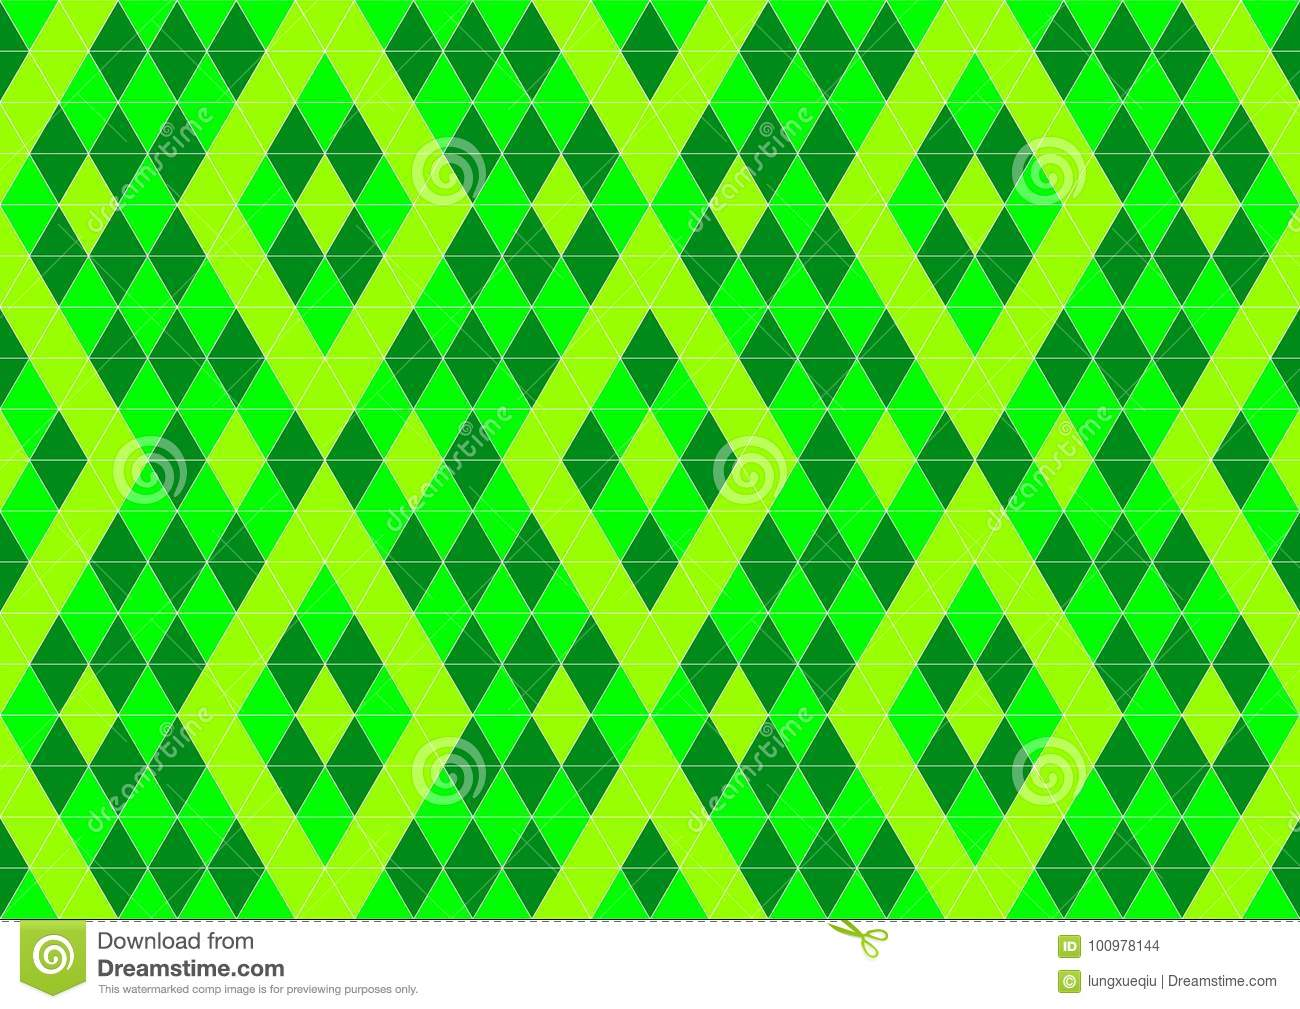 techno geometric oriental ornamental in neon green and soft yellow